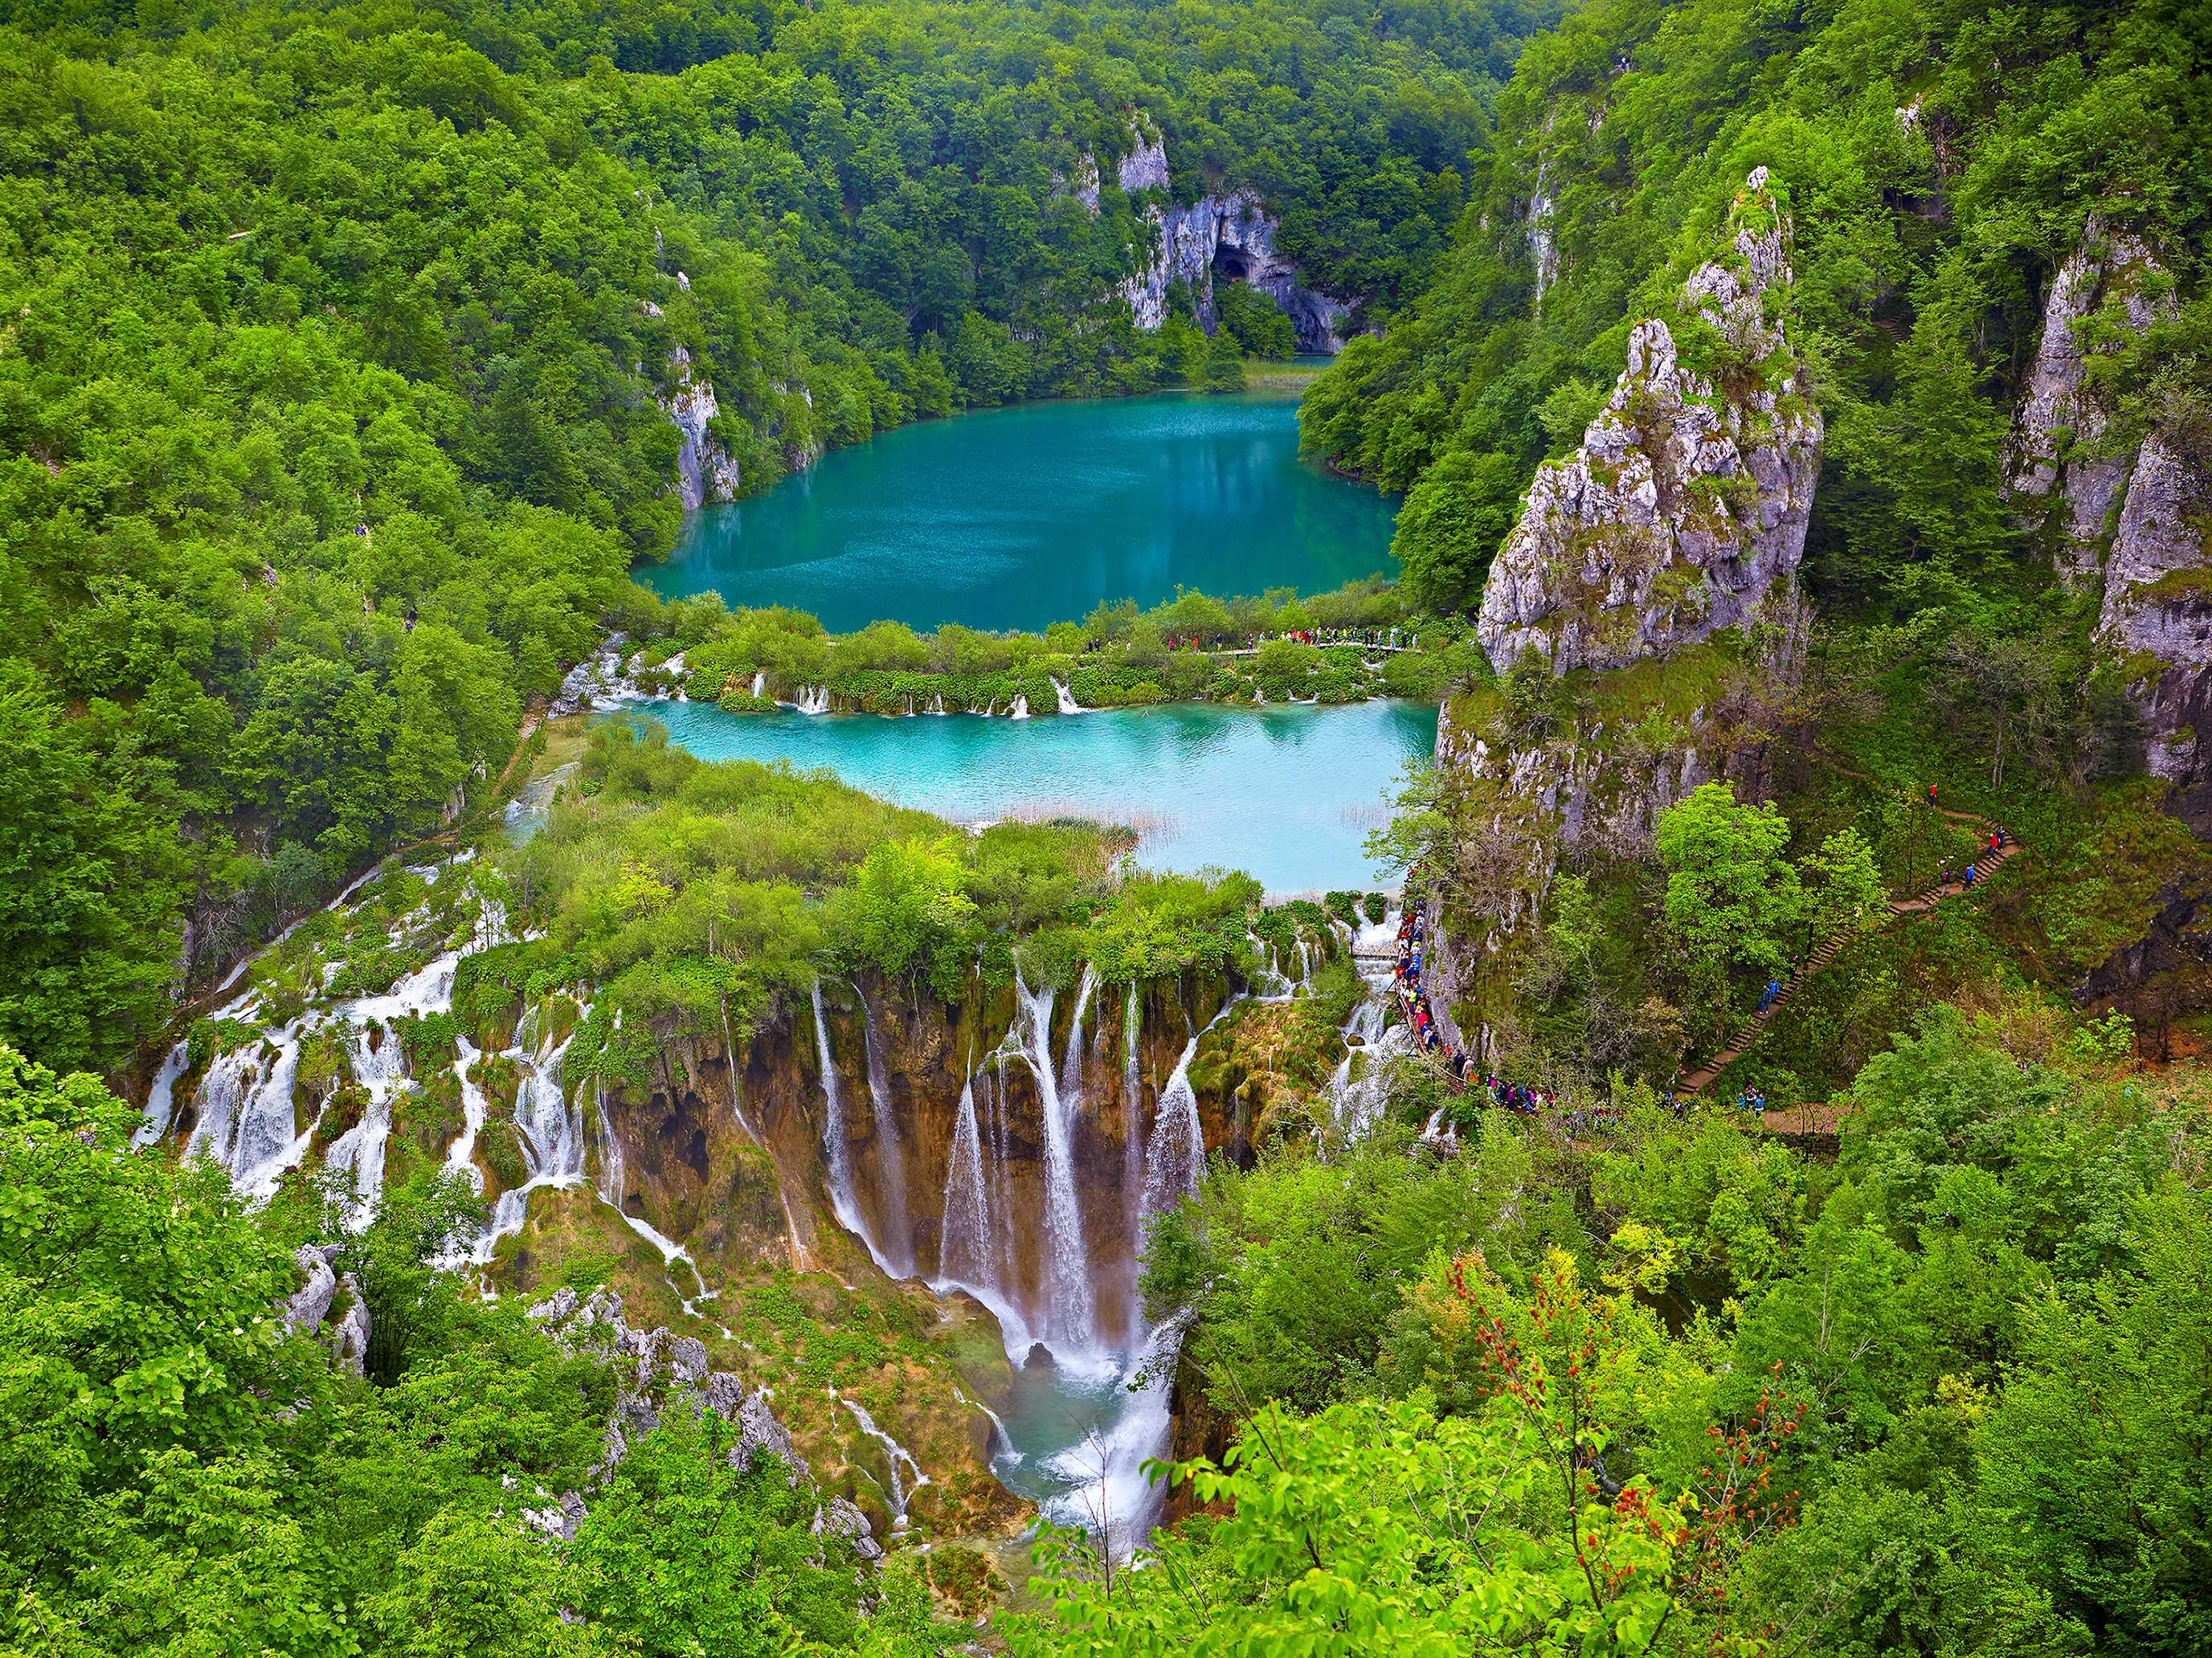 Walk through Croatia's Plitvice Lakes, a UNESCO World Heritage Site with stunning lakes, caves, waterfalls, and an array of wildlife.